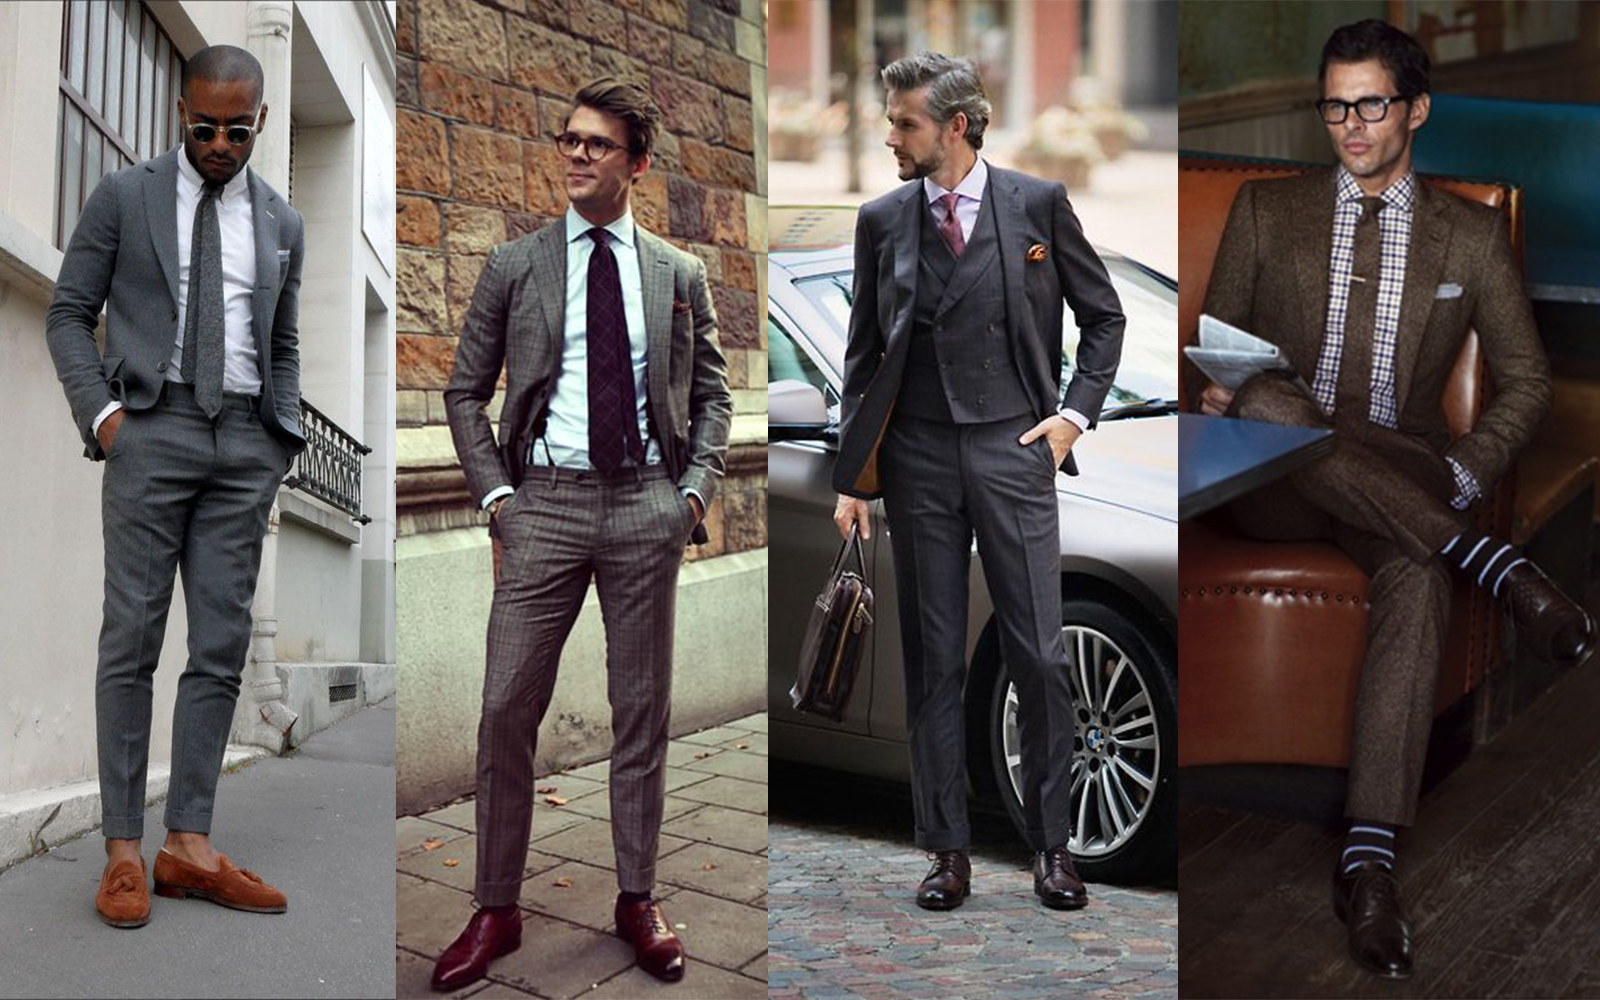 Classic style for gentlemen — or boring wage slave old farts?